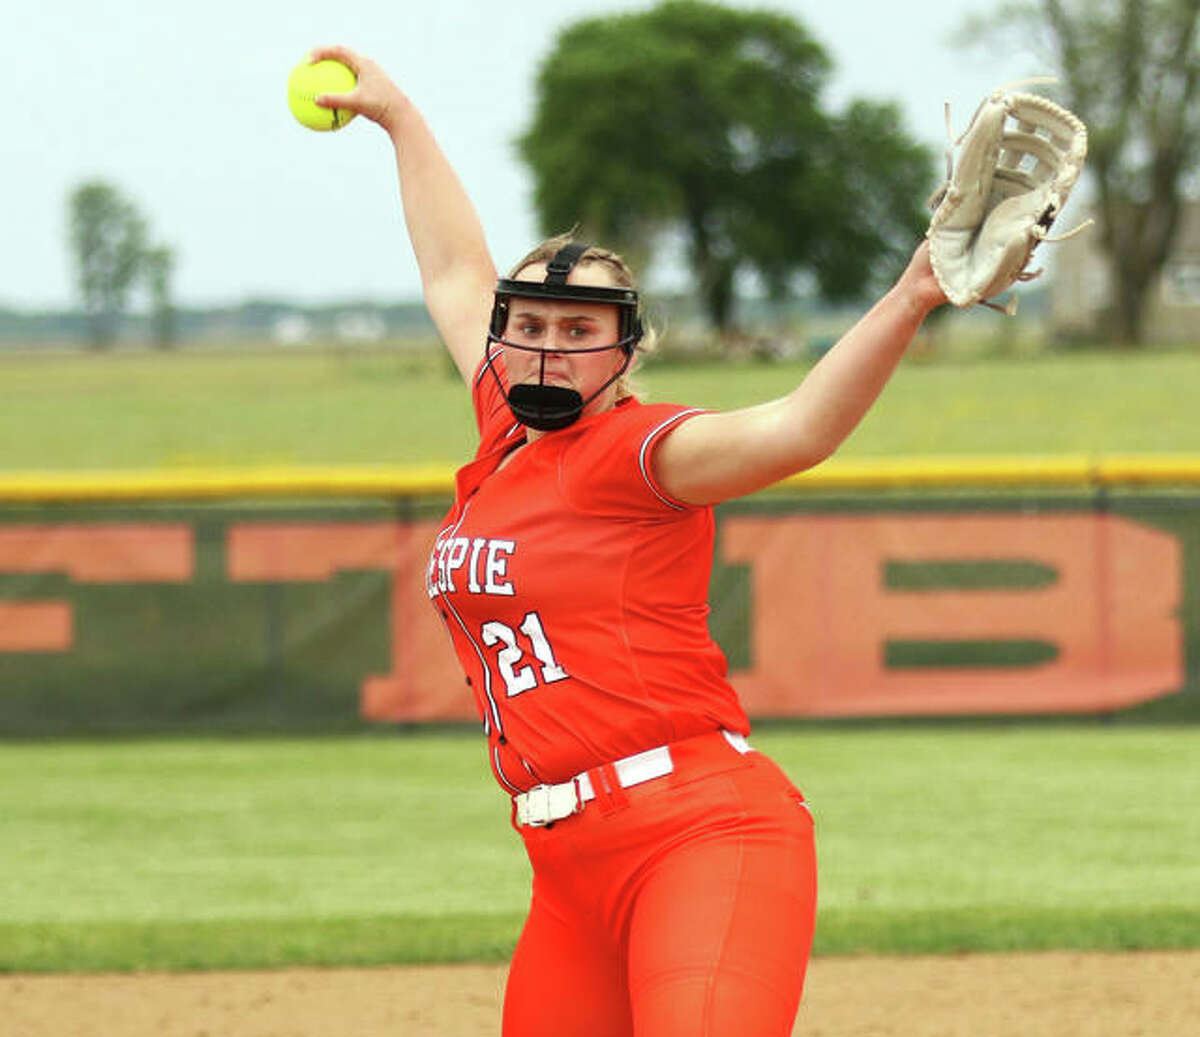 Gillespie senior Sydney Bires delivers a pitch during a game against Highland at BenGil Elementary School on May 11 in Gillespie. Bires is the 2021 Telegraph Small-Schools Softball Player of the Year.